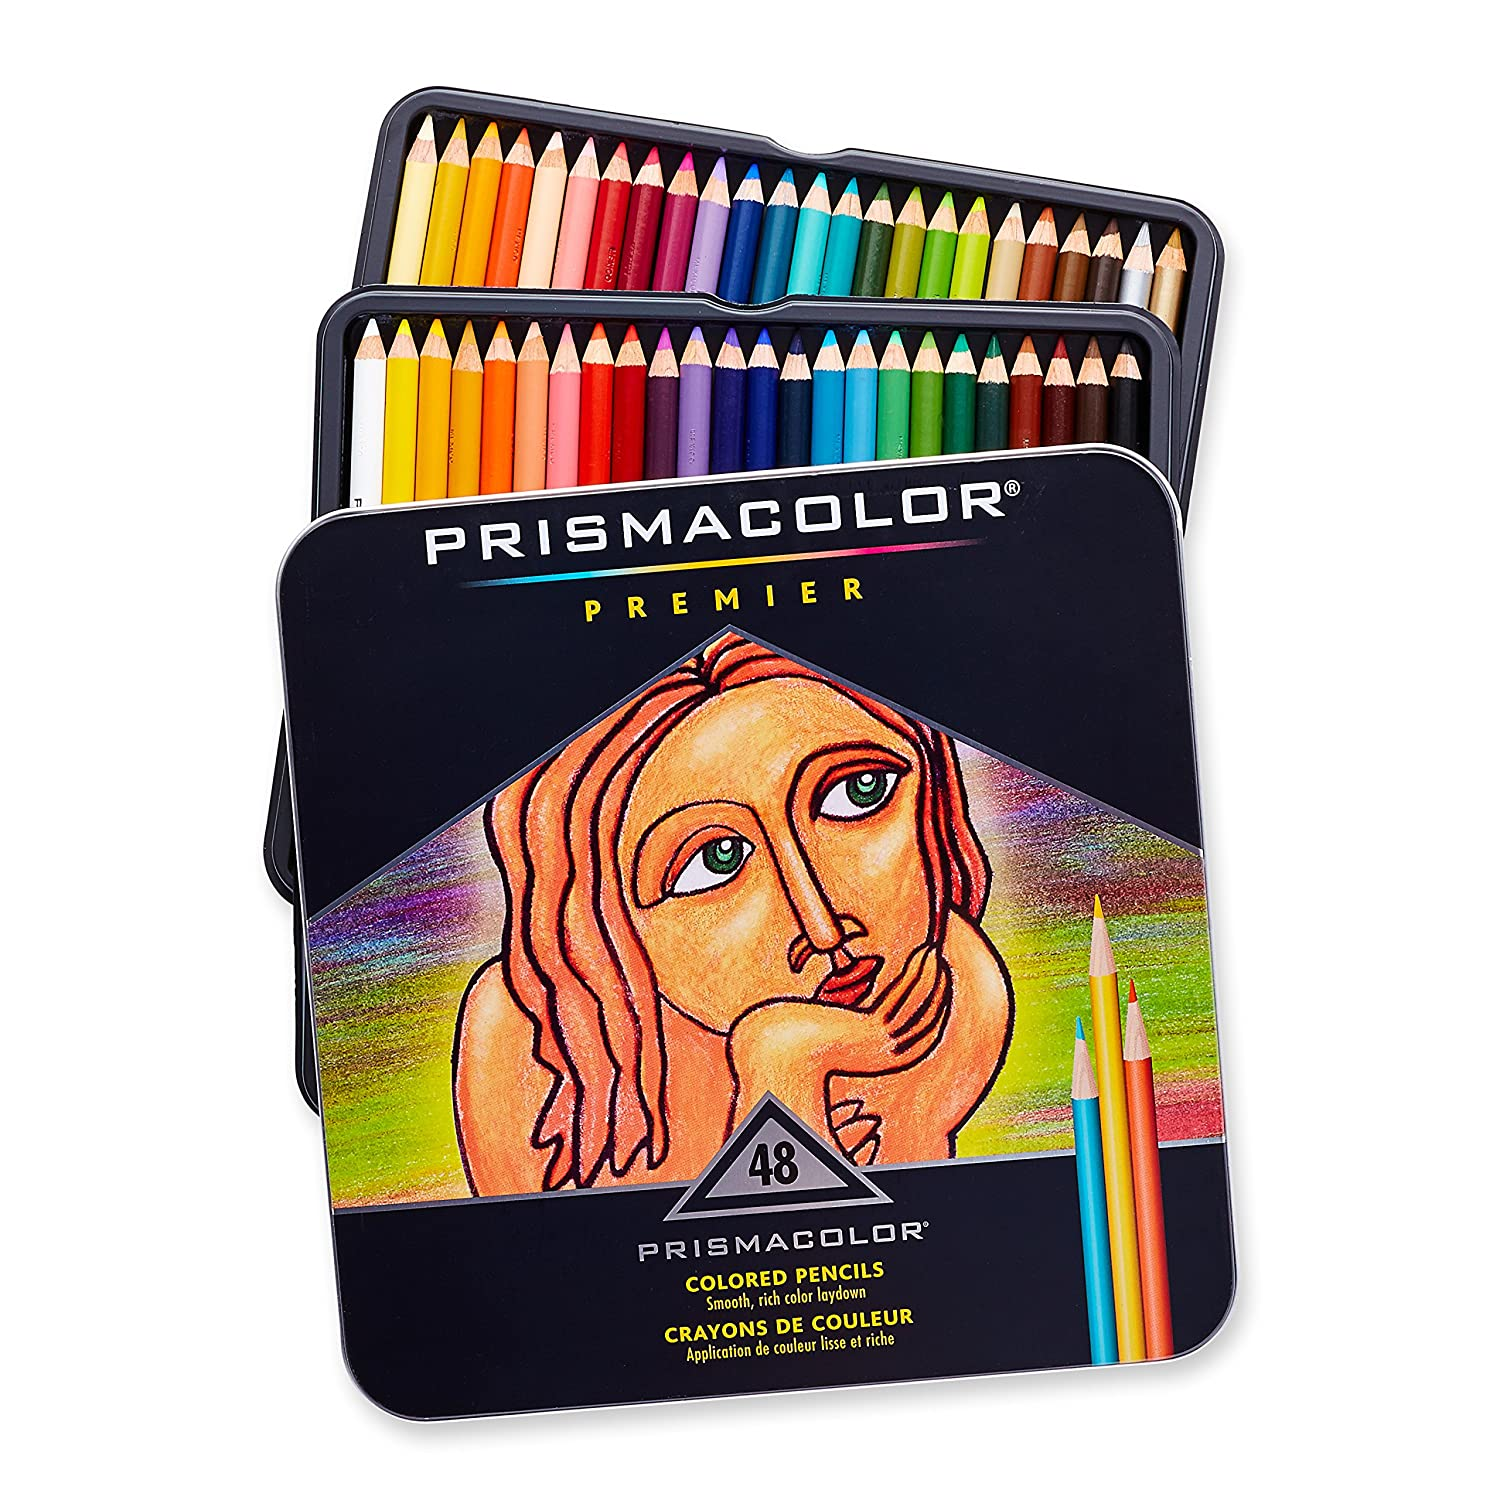 Prismacolor Premier Colored Pencils, 48 Assorted Color Pencils assorted cartoon pencils 5 pack